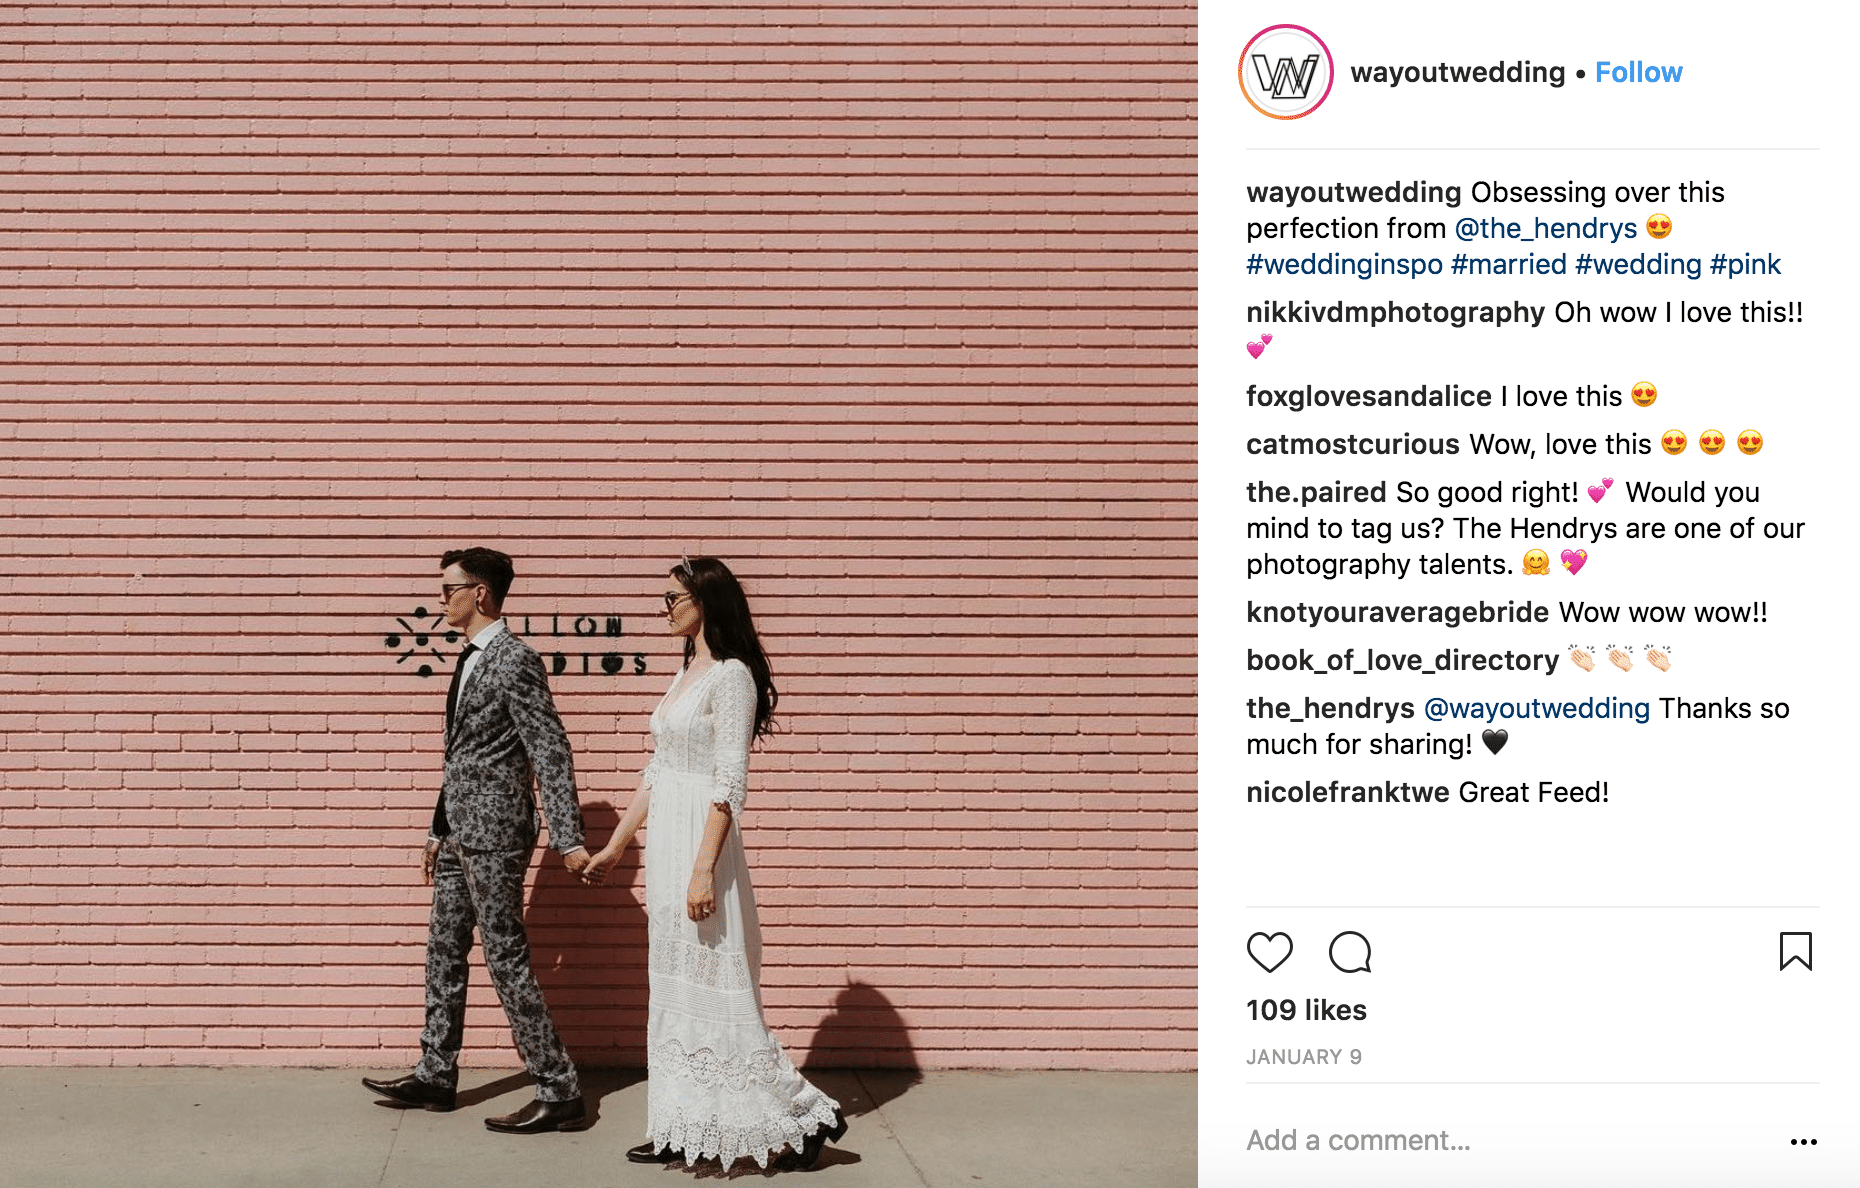 Instagram accounts to follow-wayoutwedding